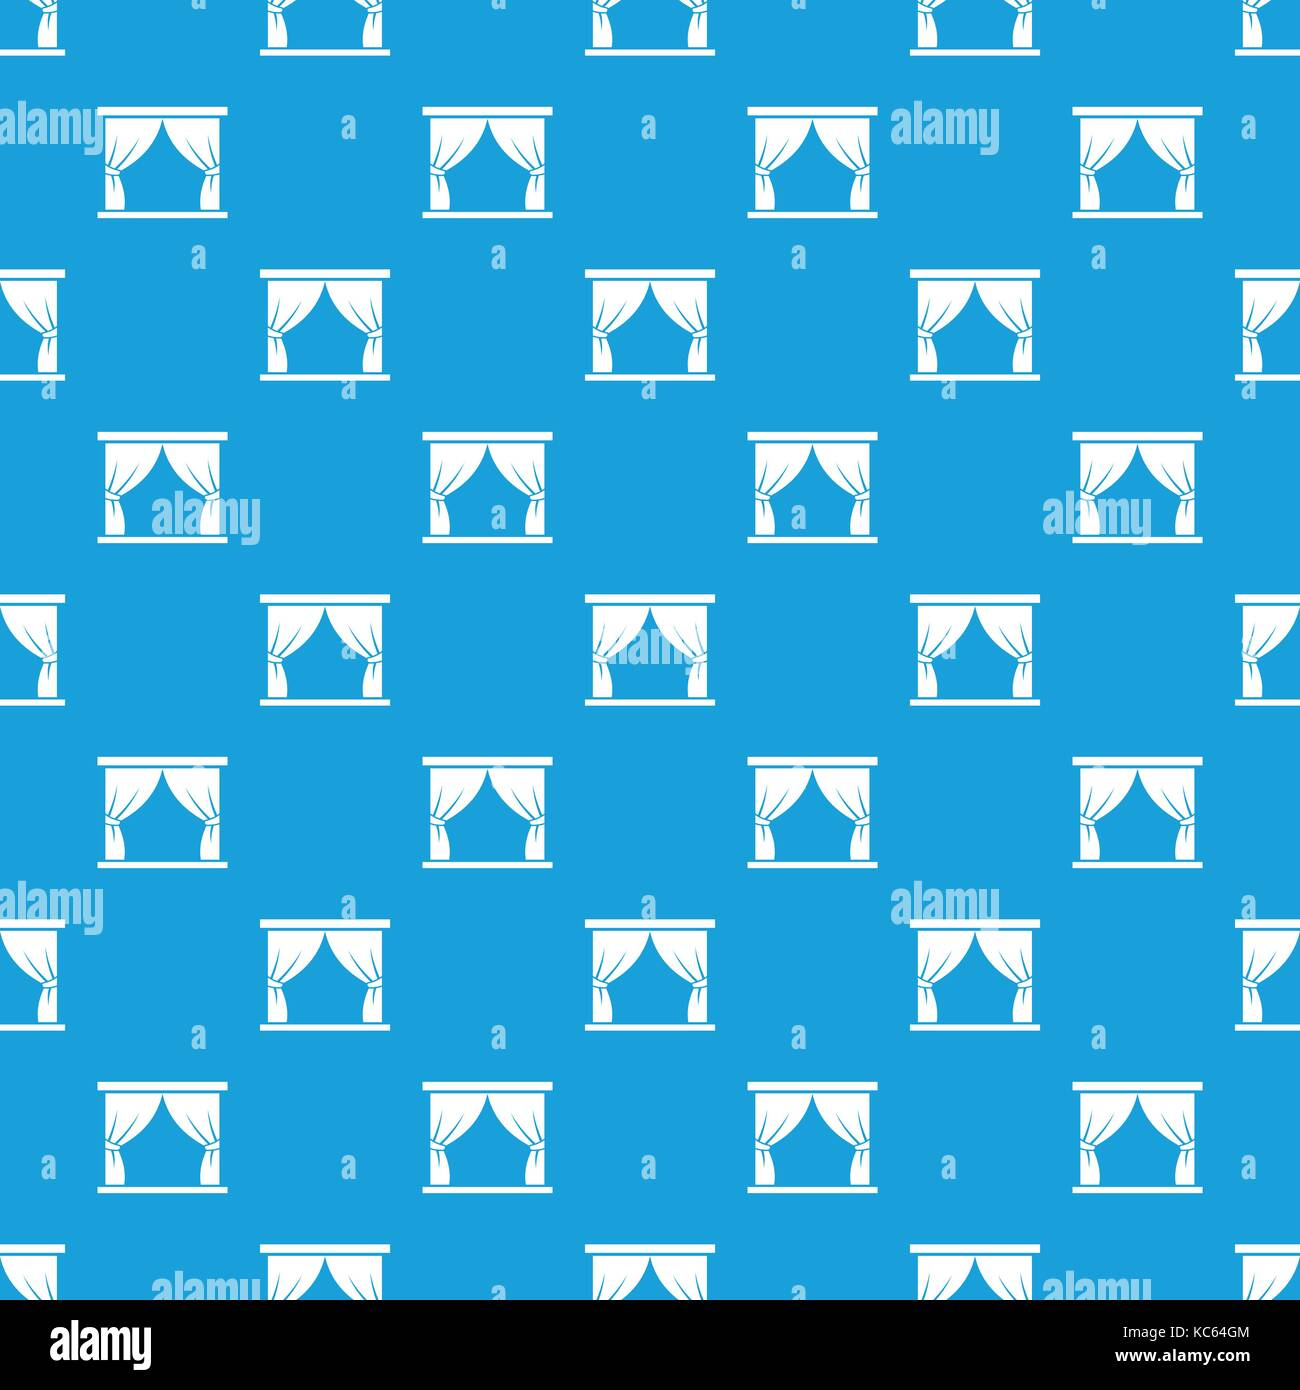 Curtain on stage pattern seamless blue - Stock Vector